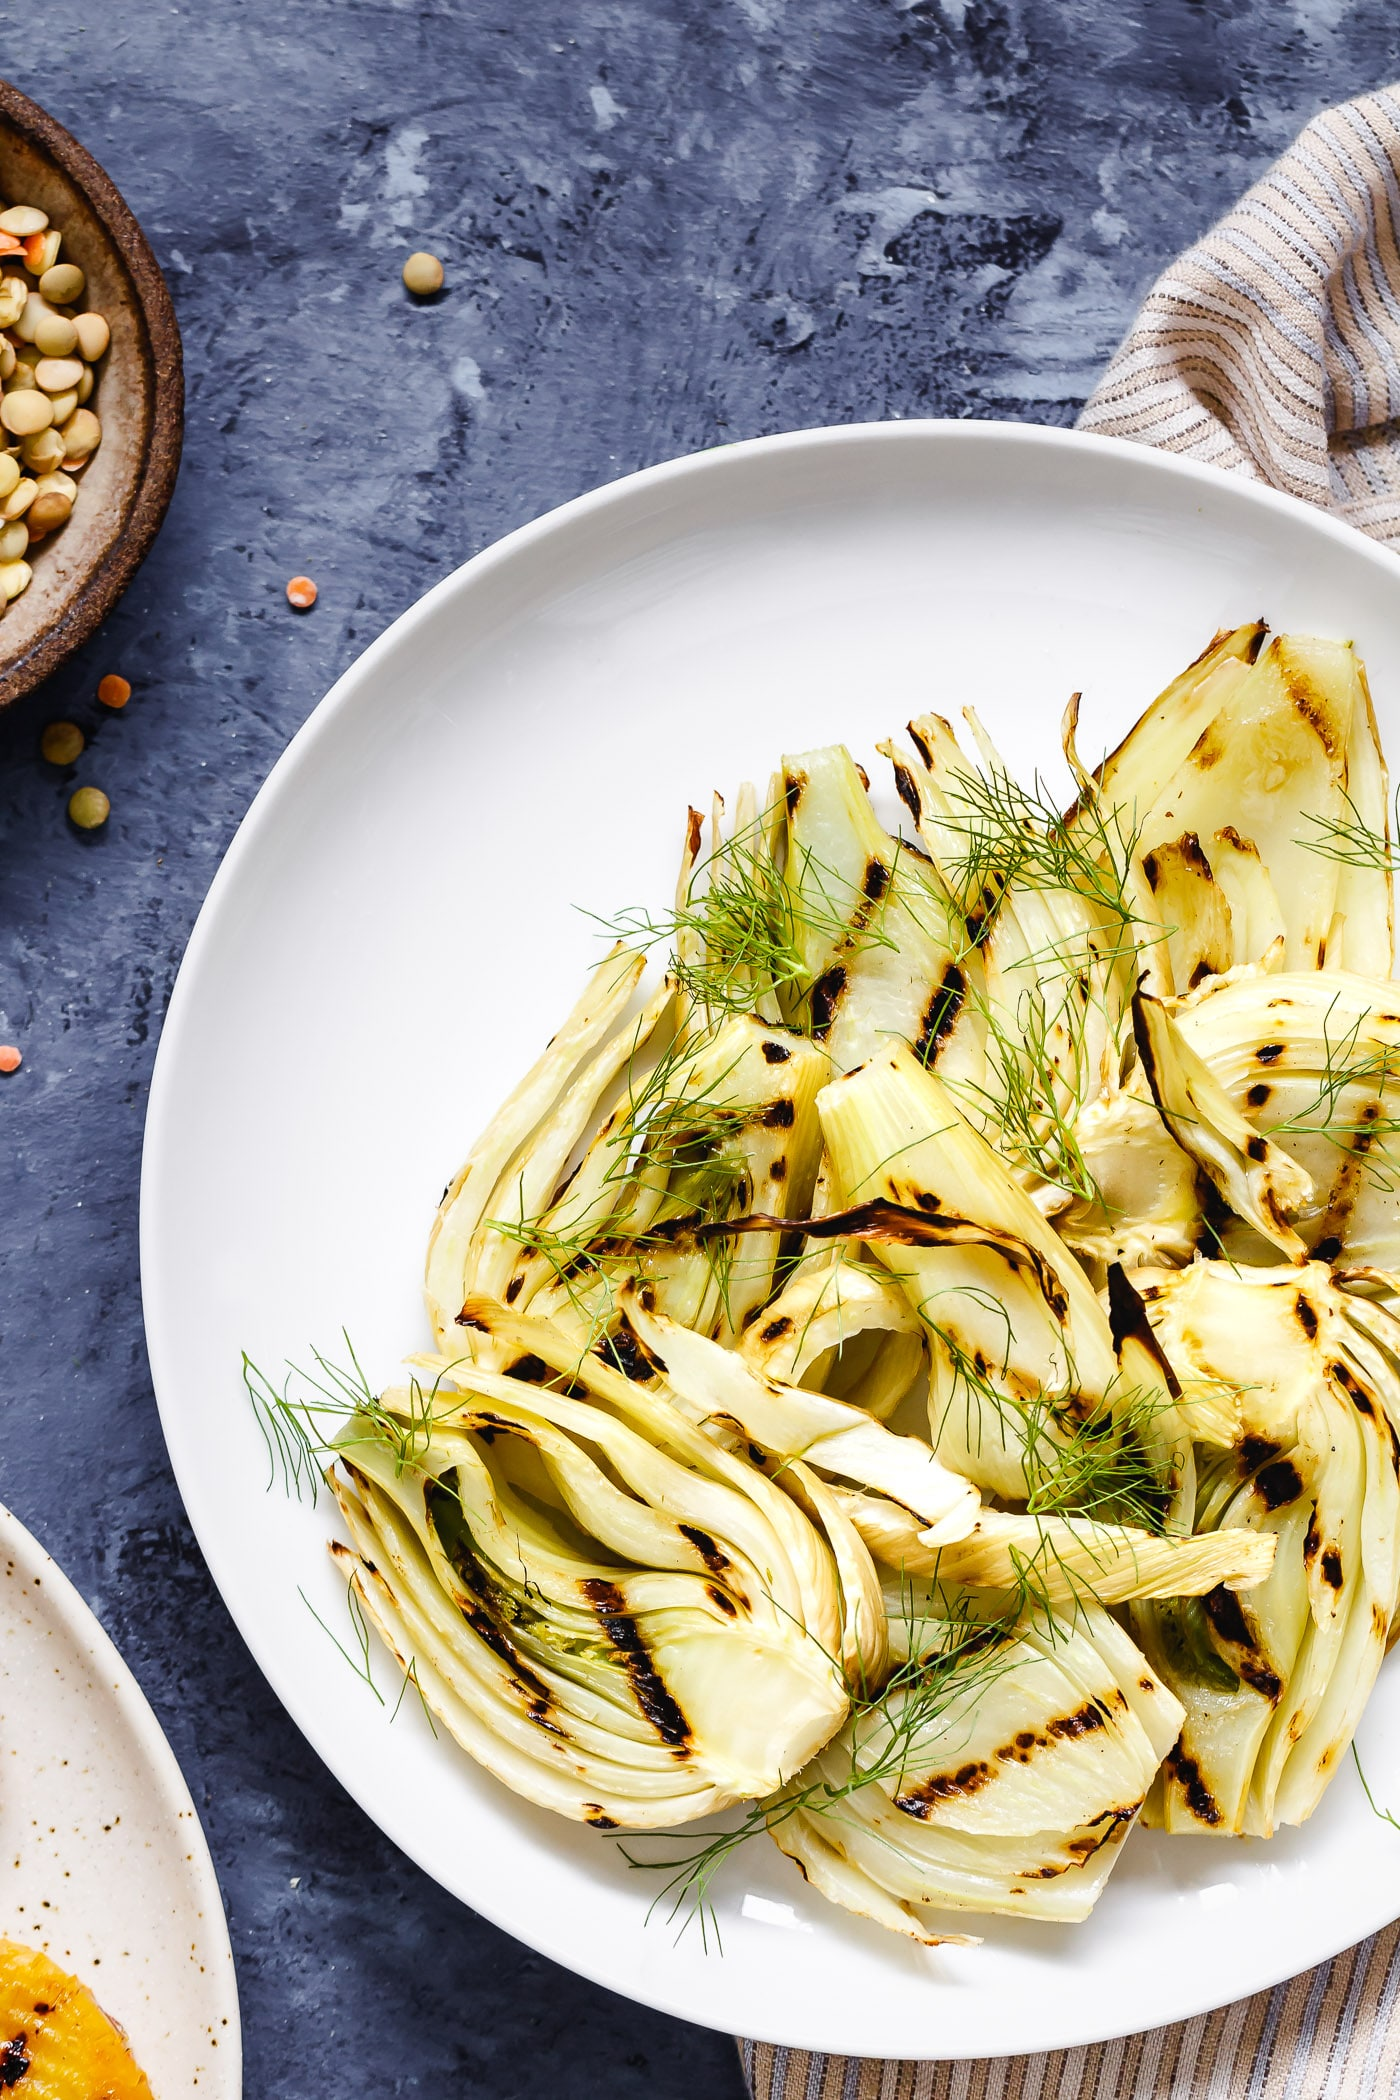 grilled slices of fennel on a white plate